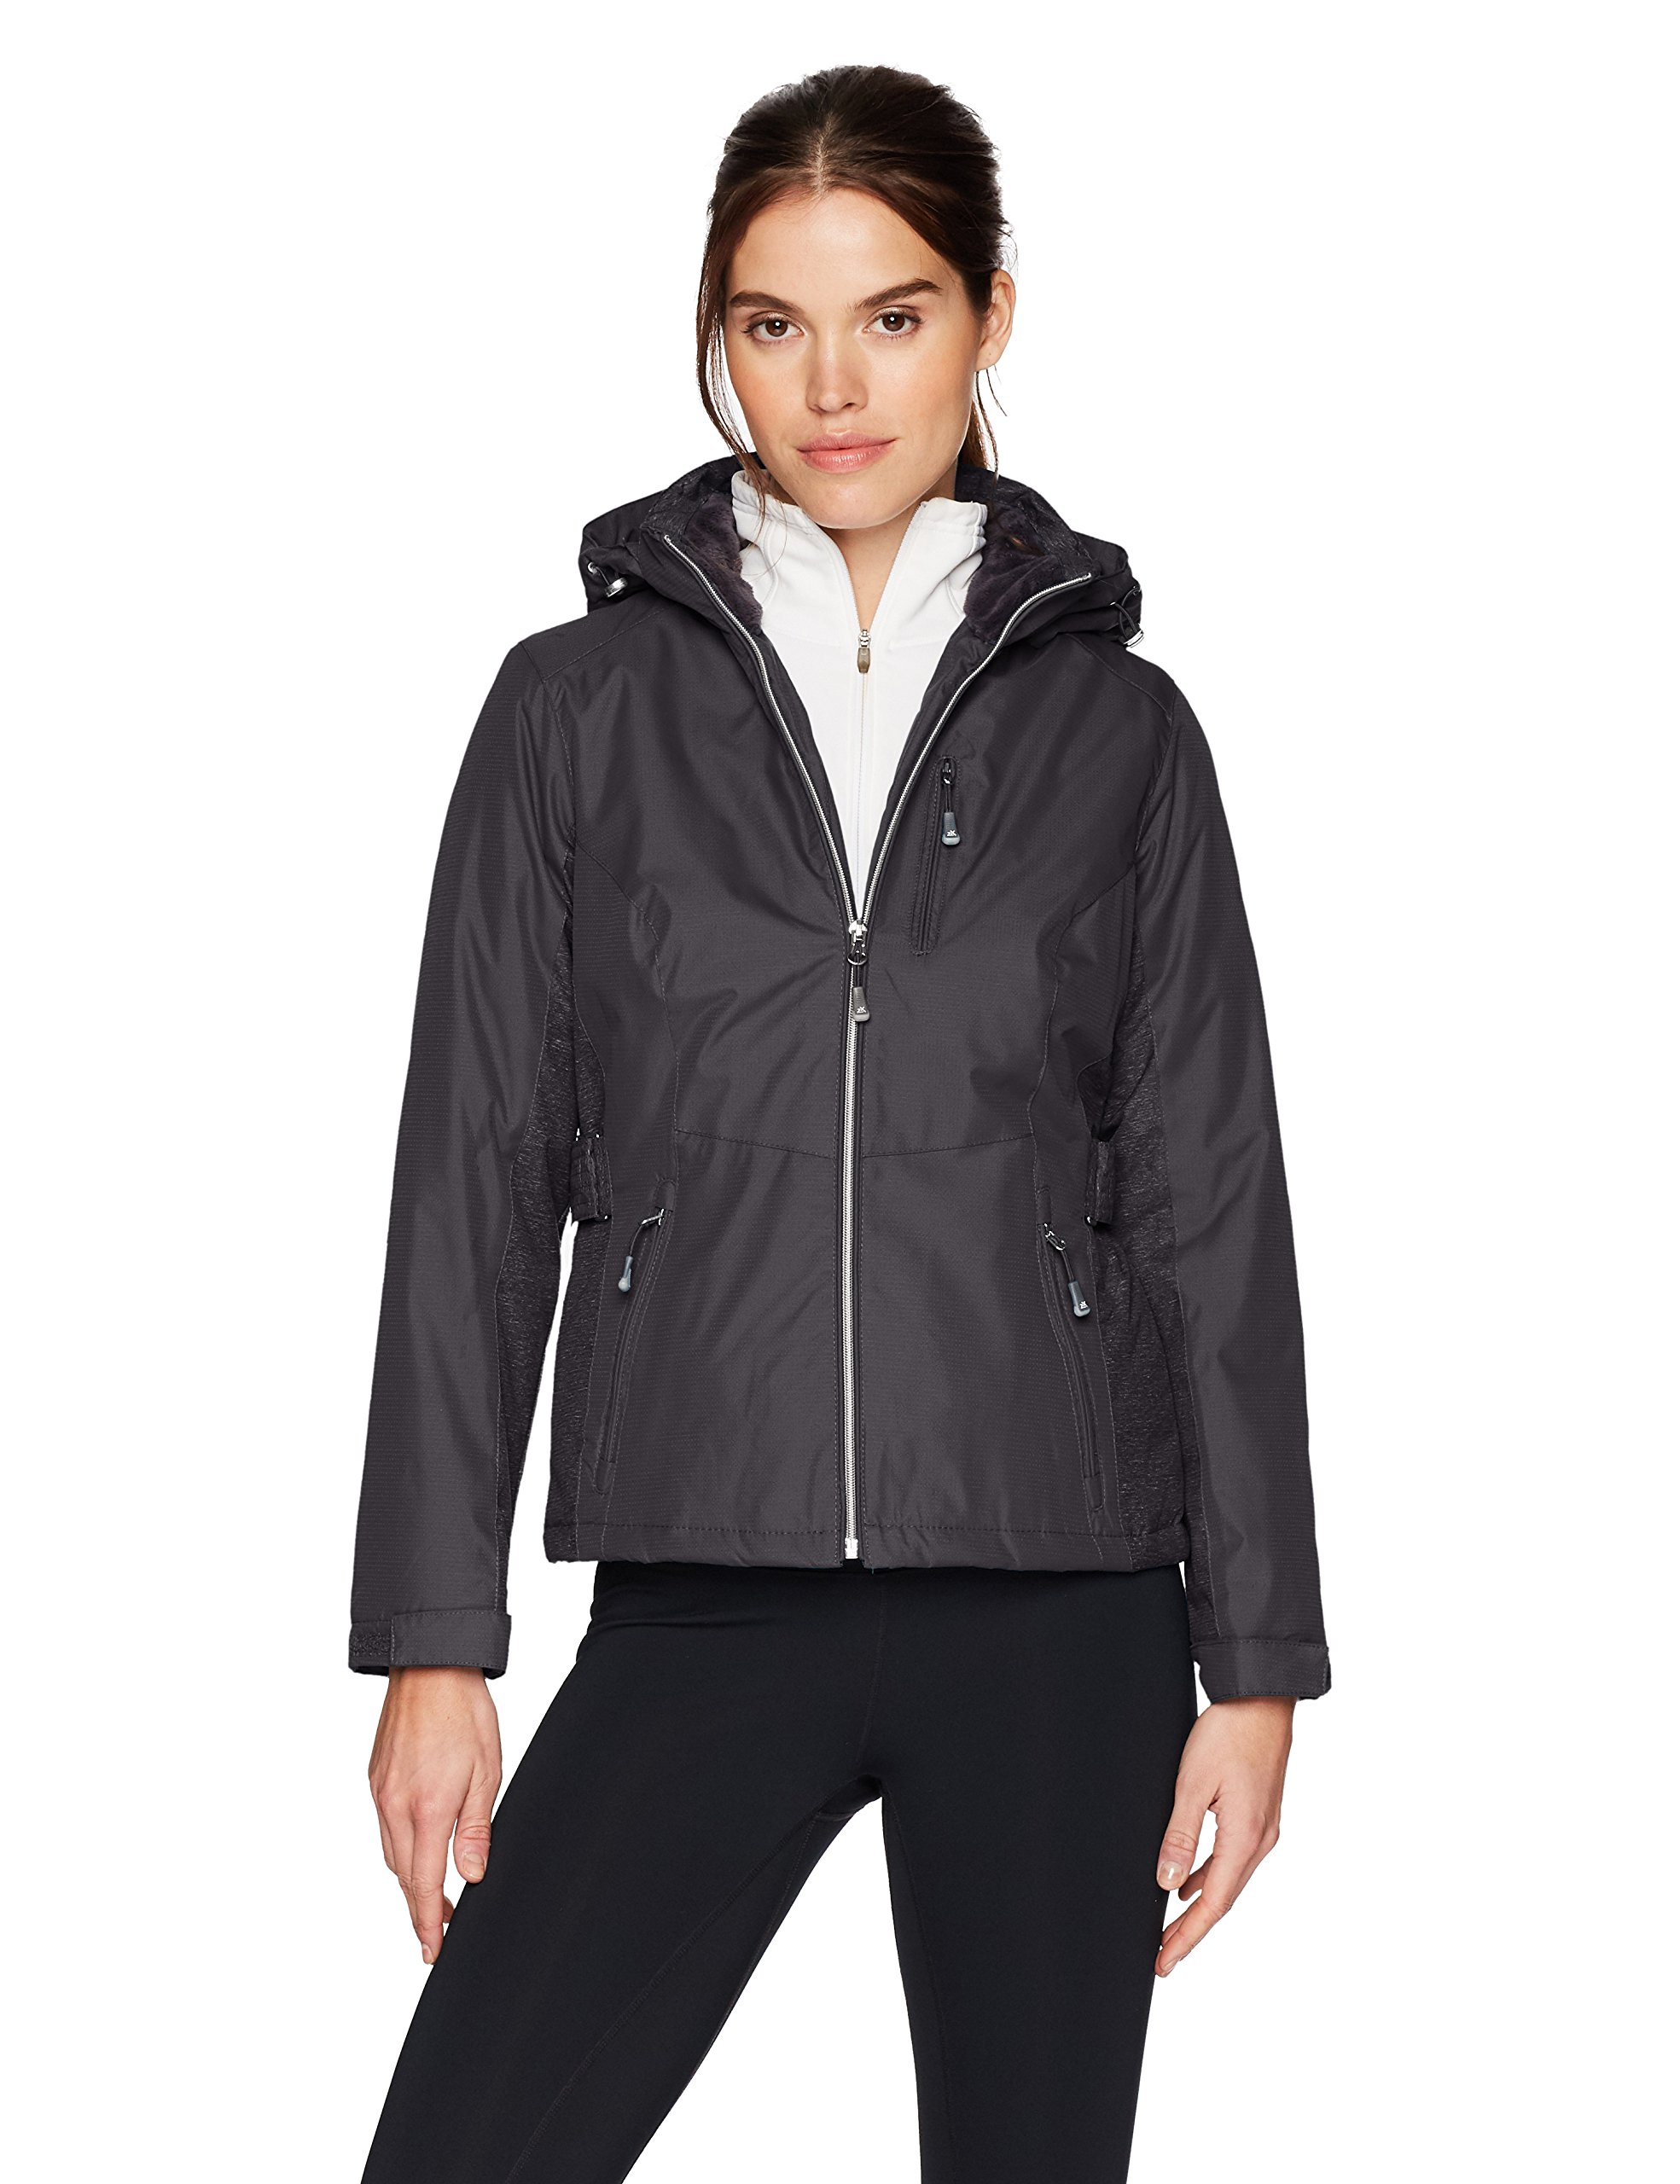 ZeroXposur Women's Aliyah Insulated Jacket, Black, Petite Large